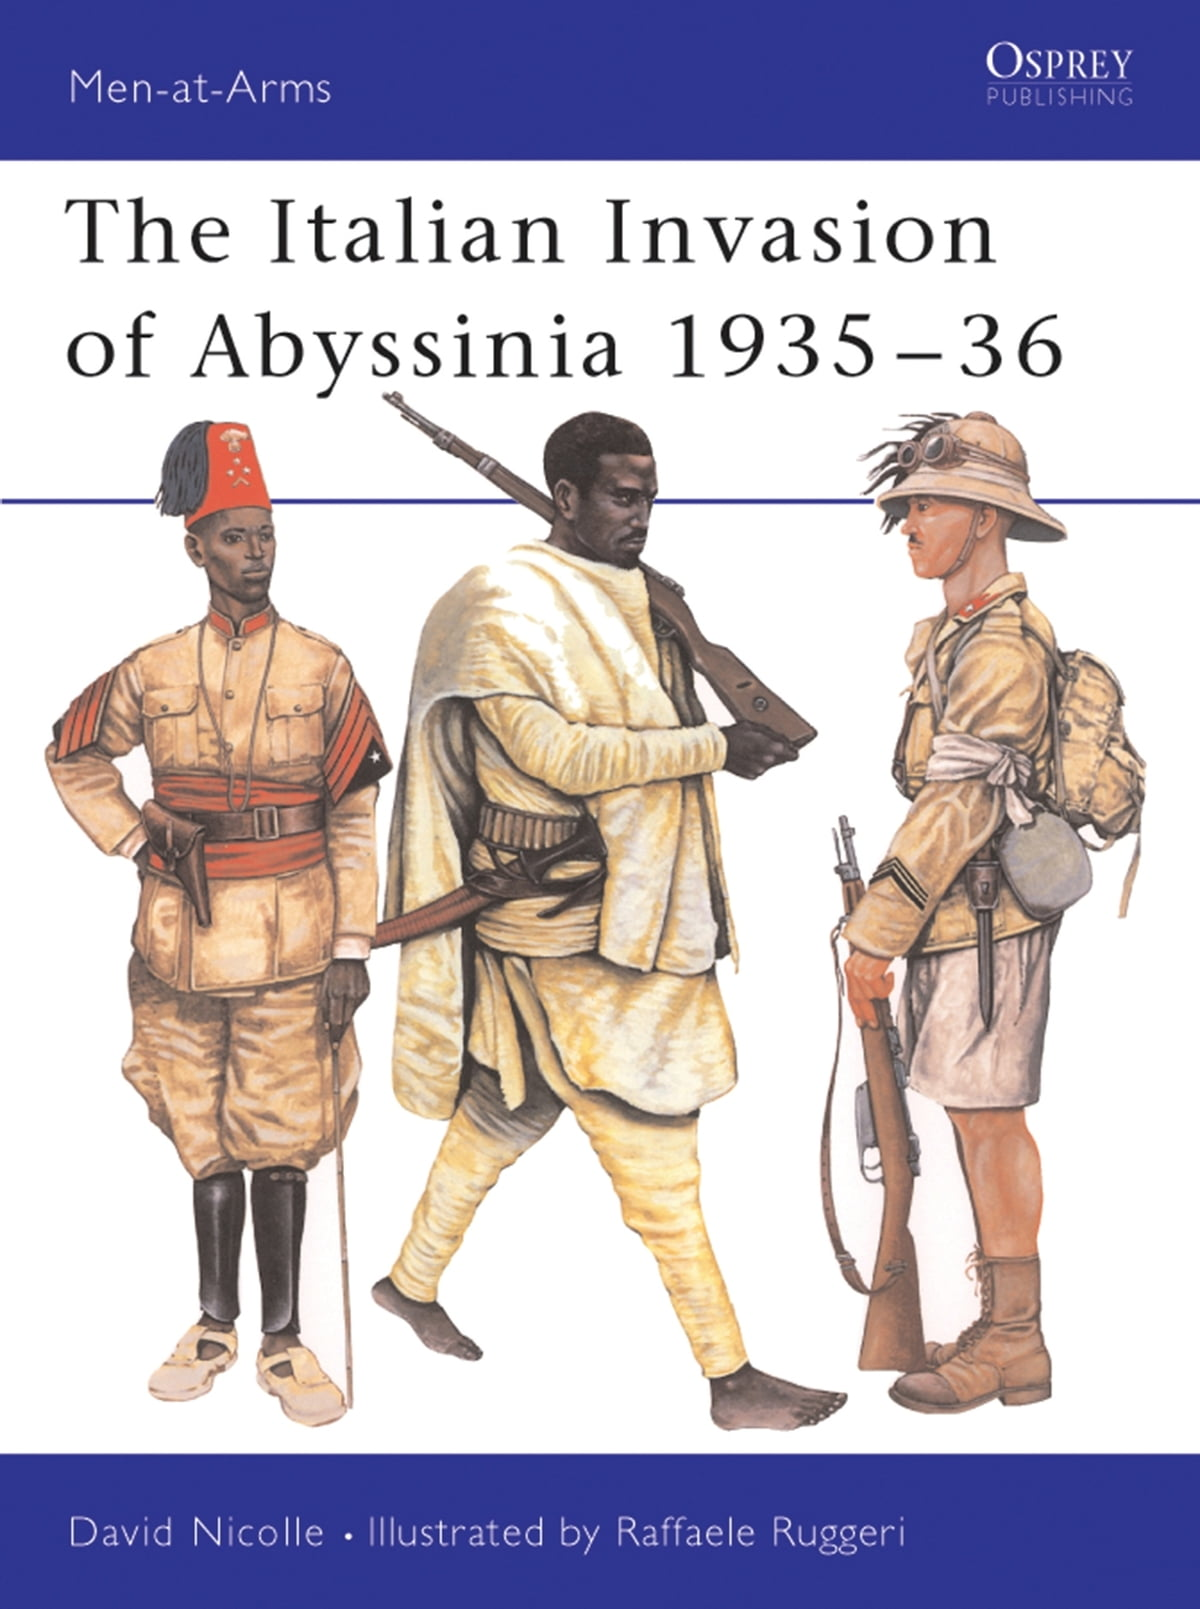 the invasion of abyssinia Effects of the abyssinian crisis no description by amanda nwaba on 11 november 2013 tweet comments (0) please log  map of italian invasion of abyssinia:.